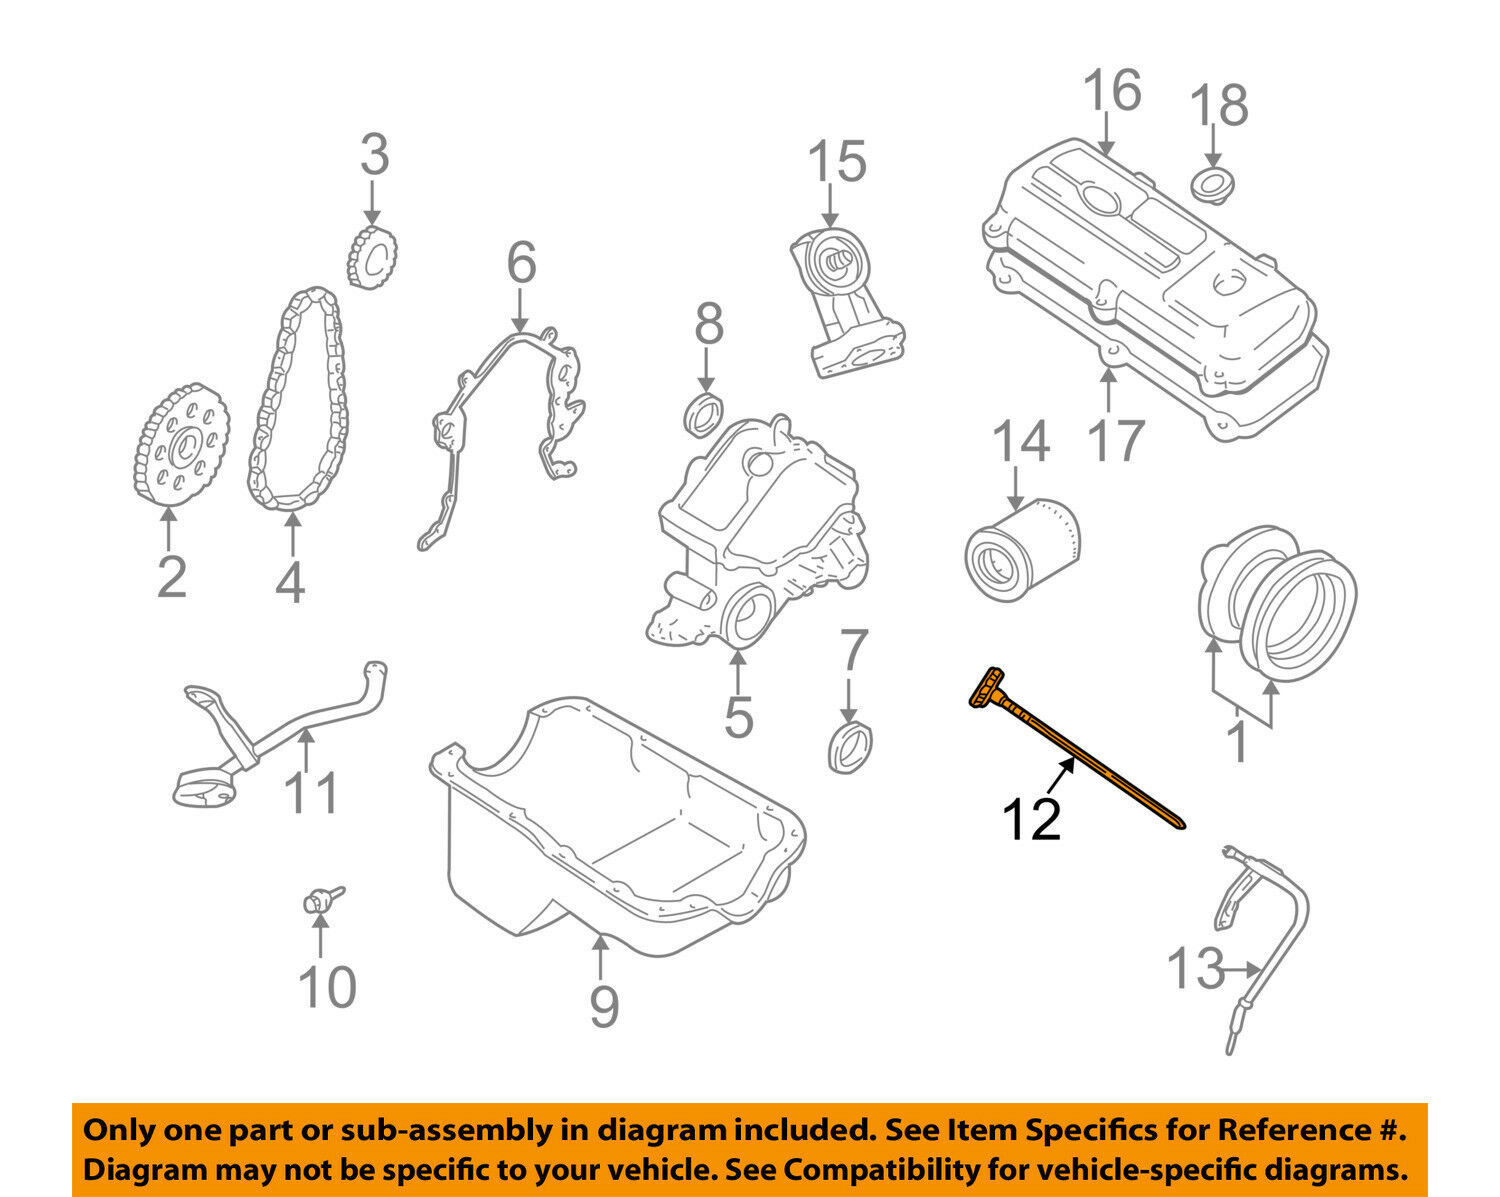 Ford Oem 99 00 Mustang 38l V6 Engine Oil Fluid Dipstick Xr3z6750aa Lincoln Ls Diagram 1 Of 2only Available